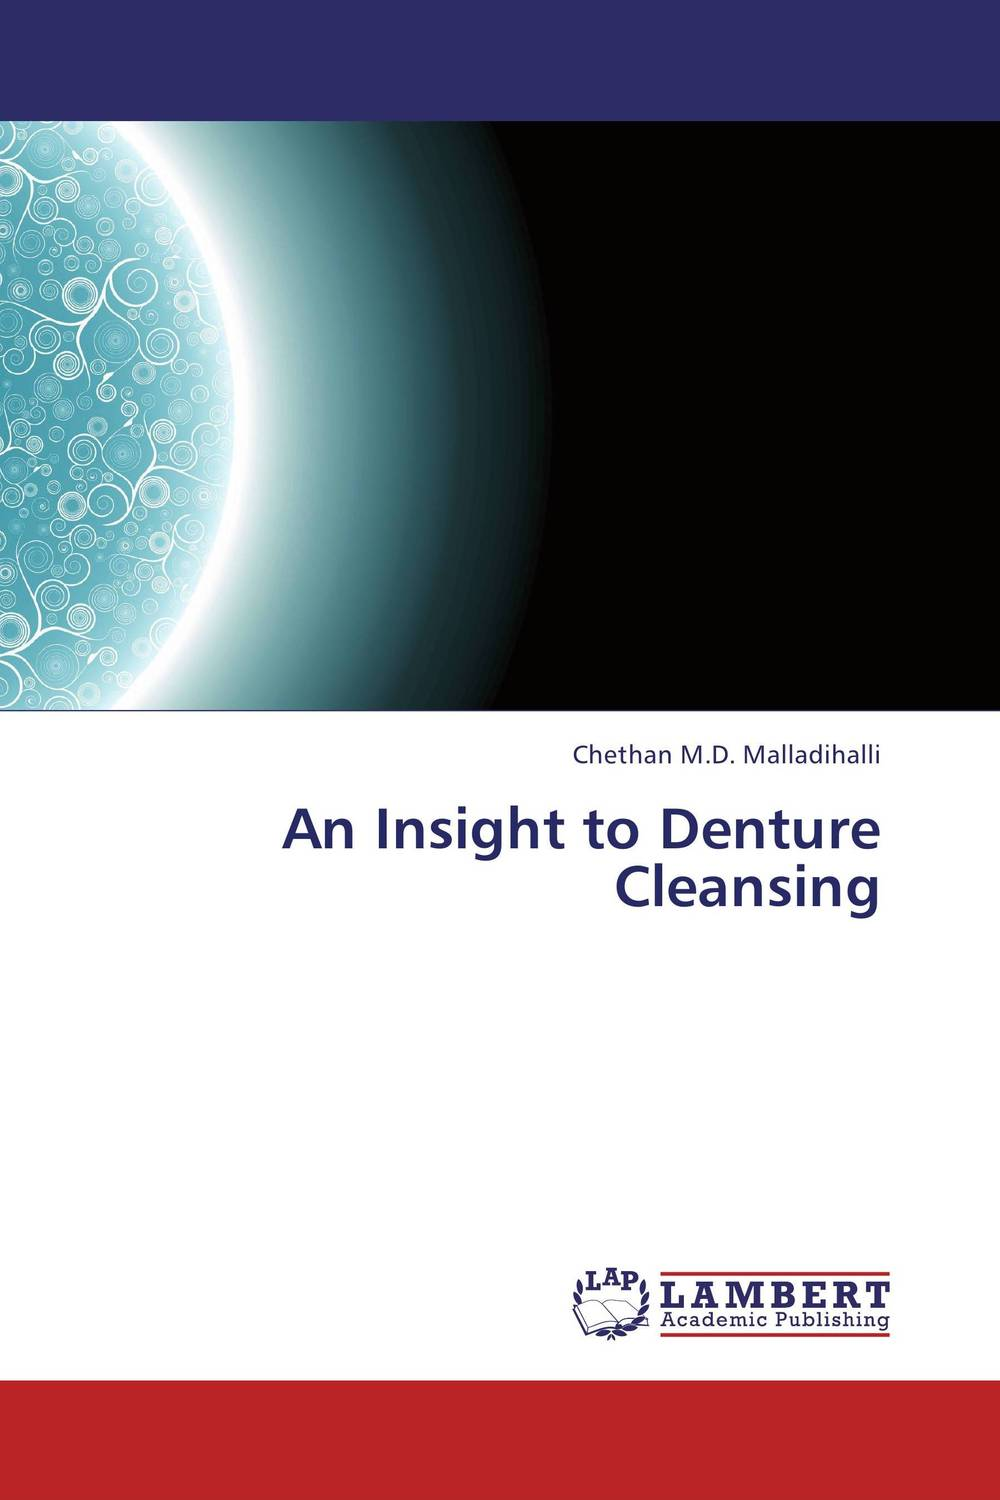 An Insight to Denture Cleansing halitosis